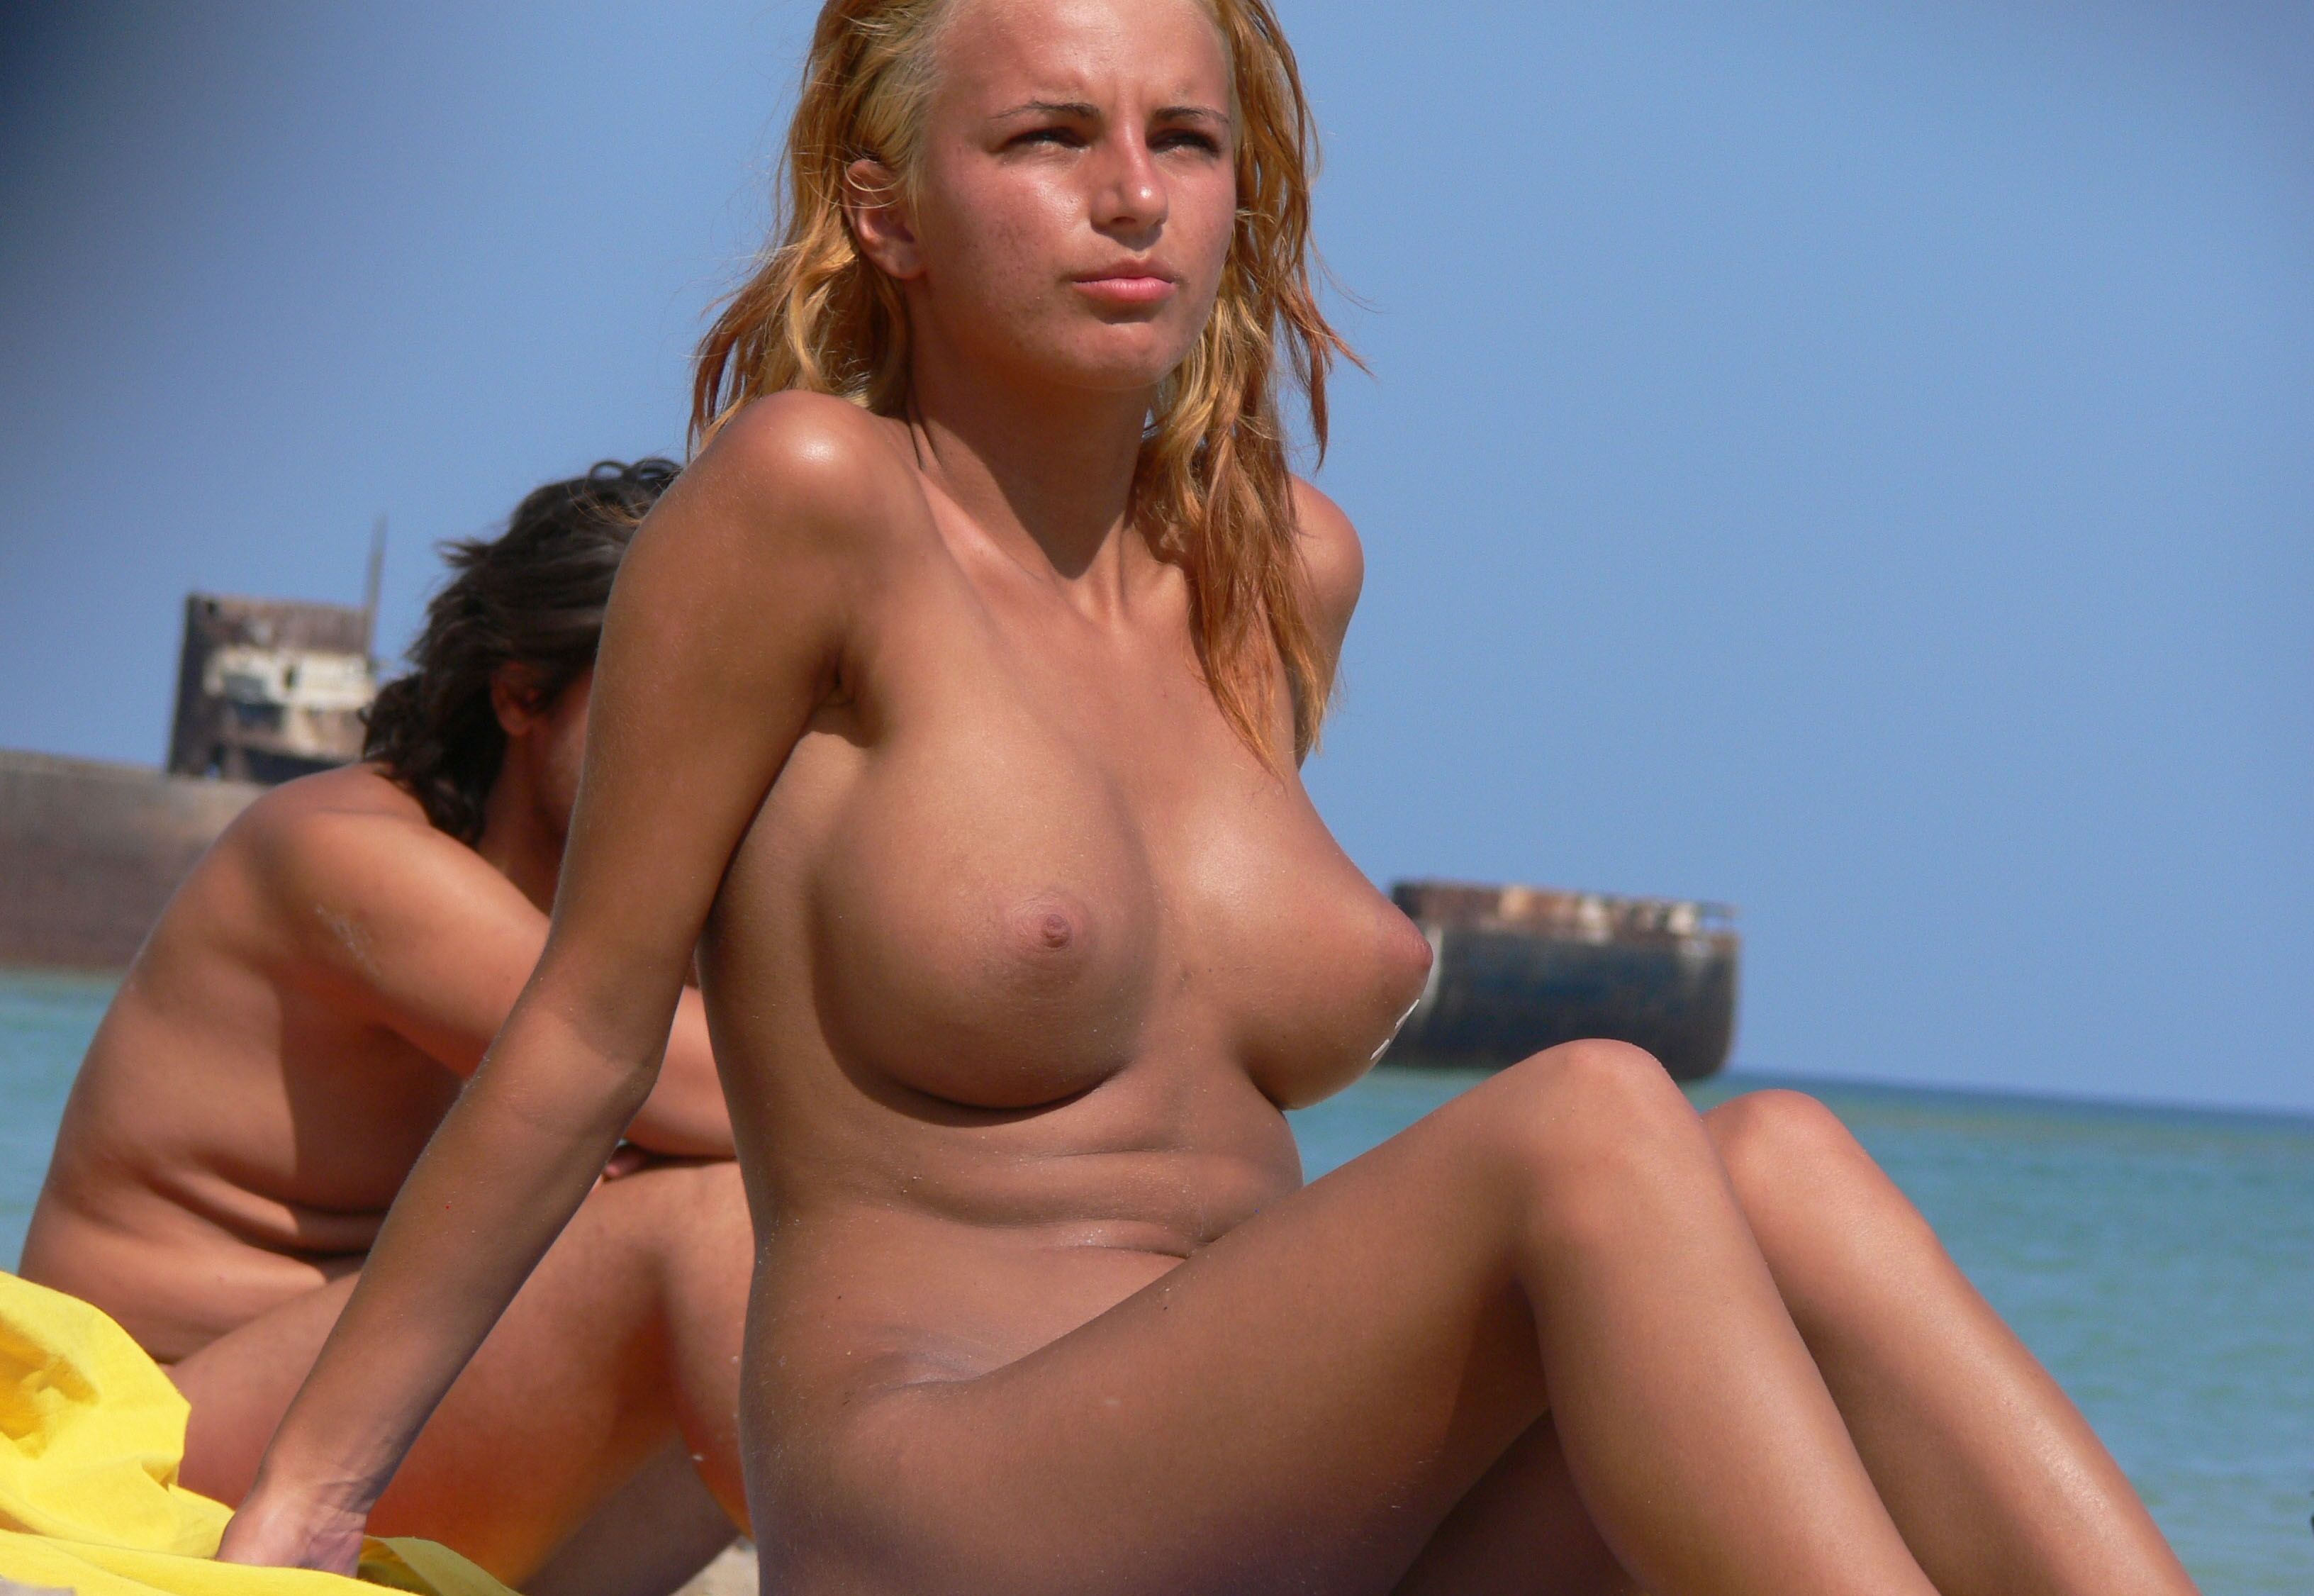 nudists-girls-boobs-beach-topless-mix-vol7-78